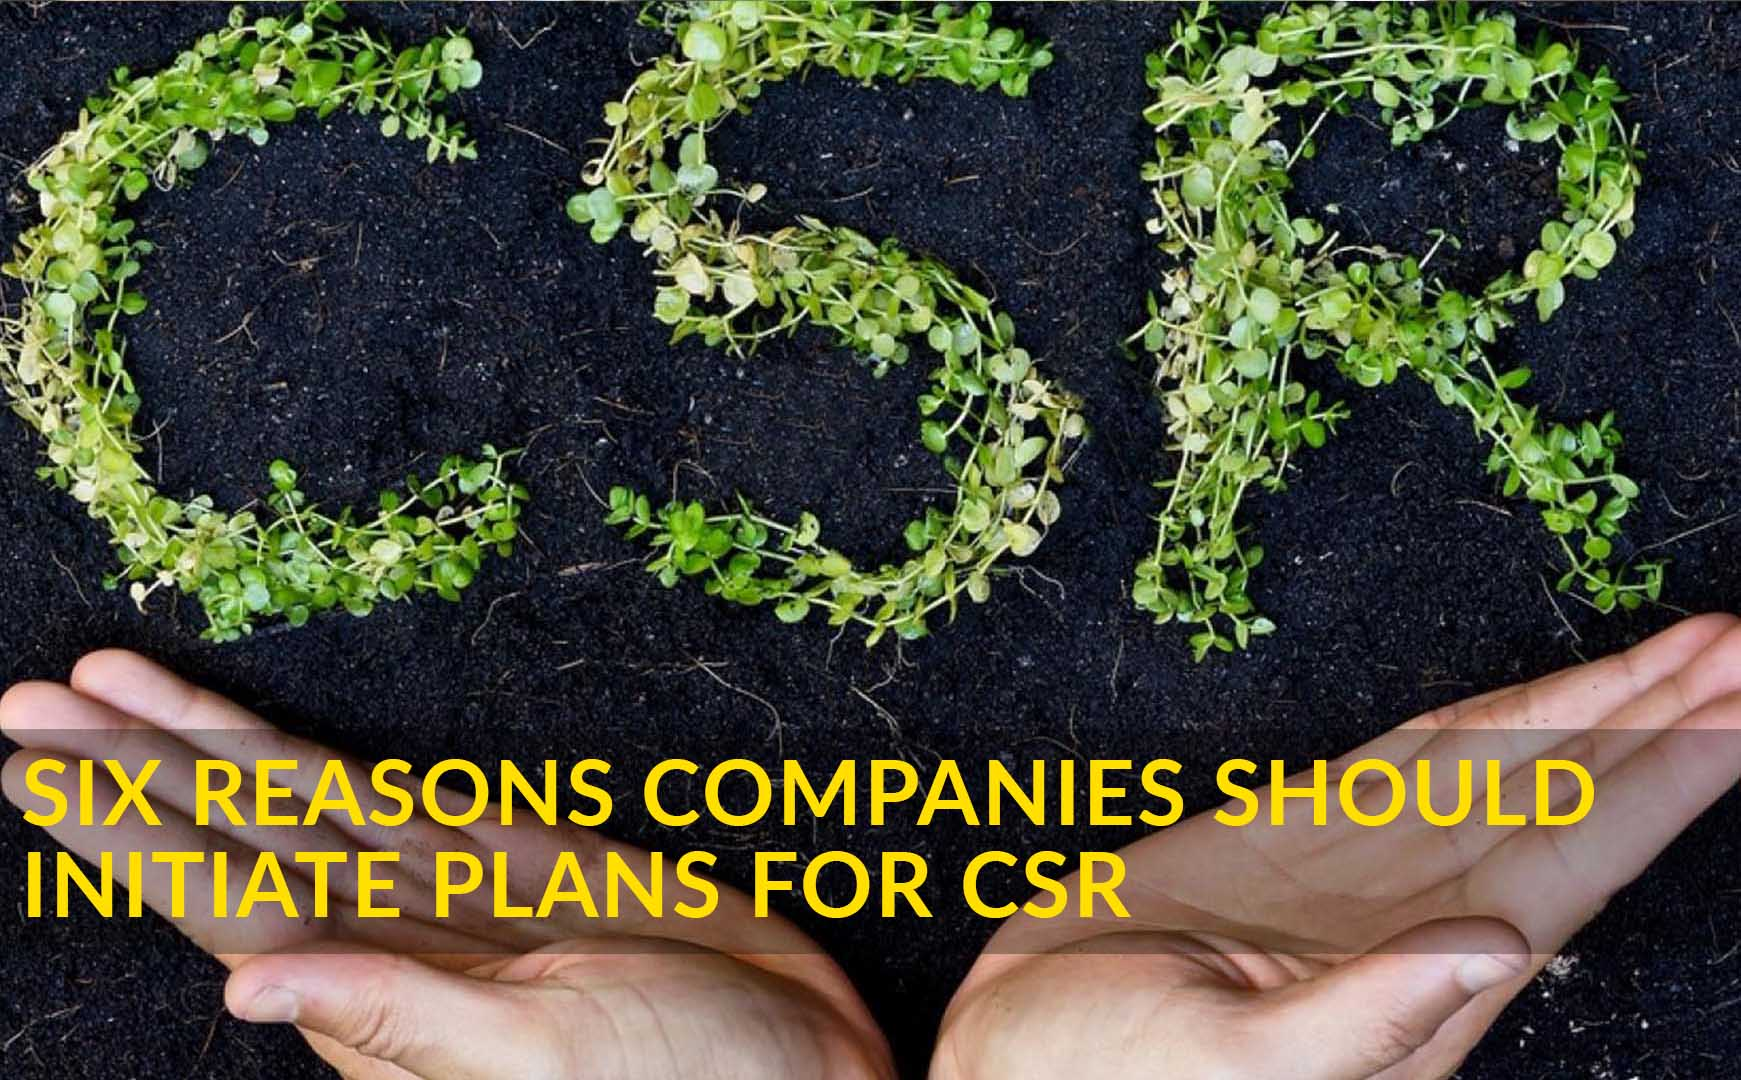 Six Reasons Companies Should Initiate Plans for CSR